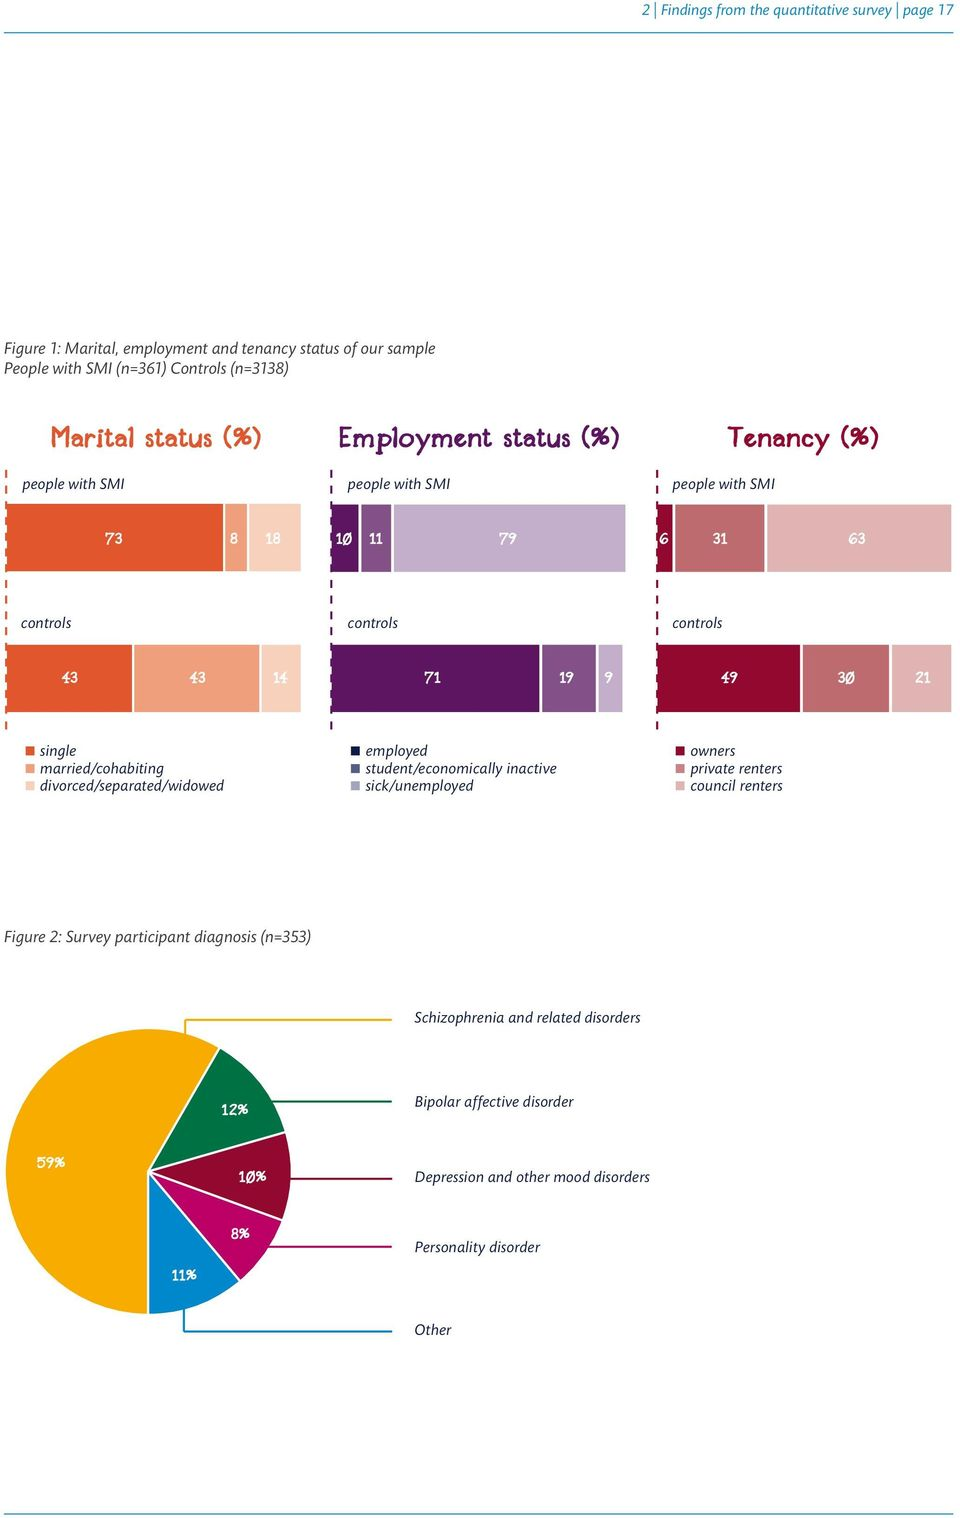 single married/cohabiting divorced/separated/widowed employed student/economically inactive sick/unemployed owners private renters council renters Figure 2: Survey